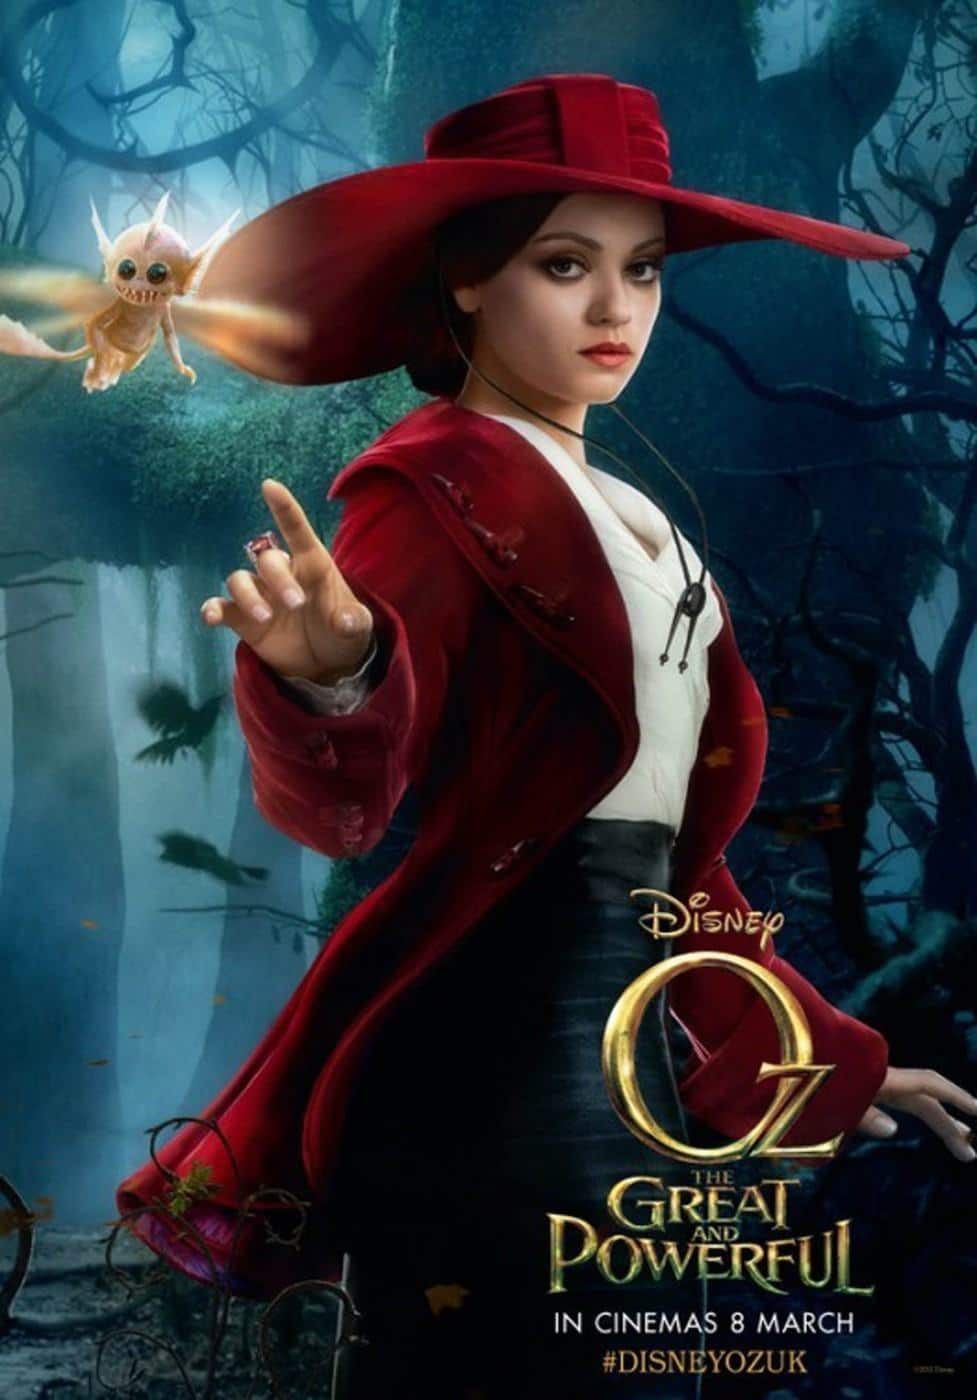 """Image: 0152722777, License: Rights managed, 26-1-2013 """"Oz the Great and Powerful"""" film posters Pictured: Mila Kunis, Model Release: No or not aplicable, Credit line: Profimedia-Red Dot, Planet"""